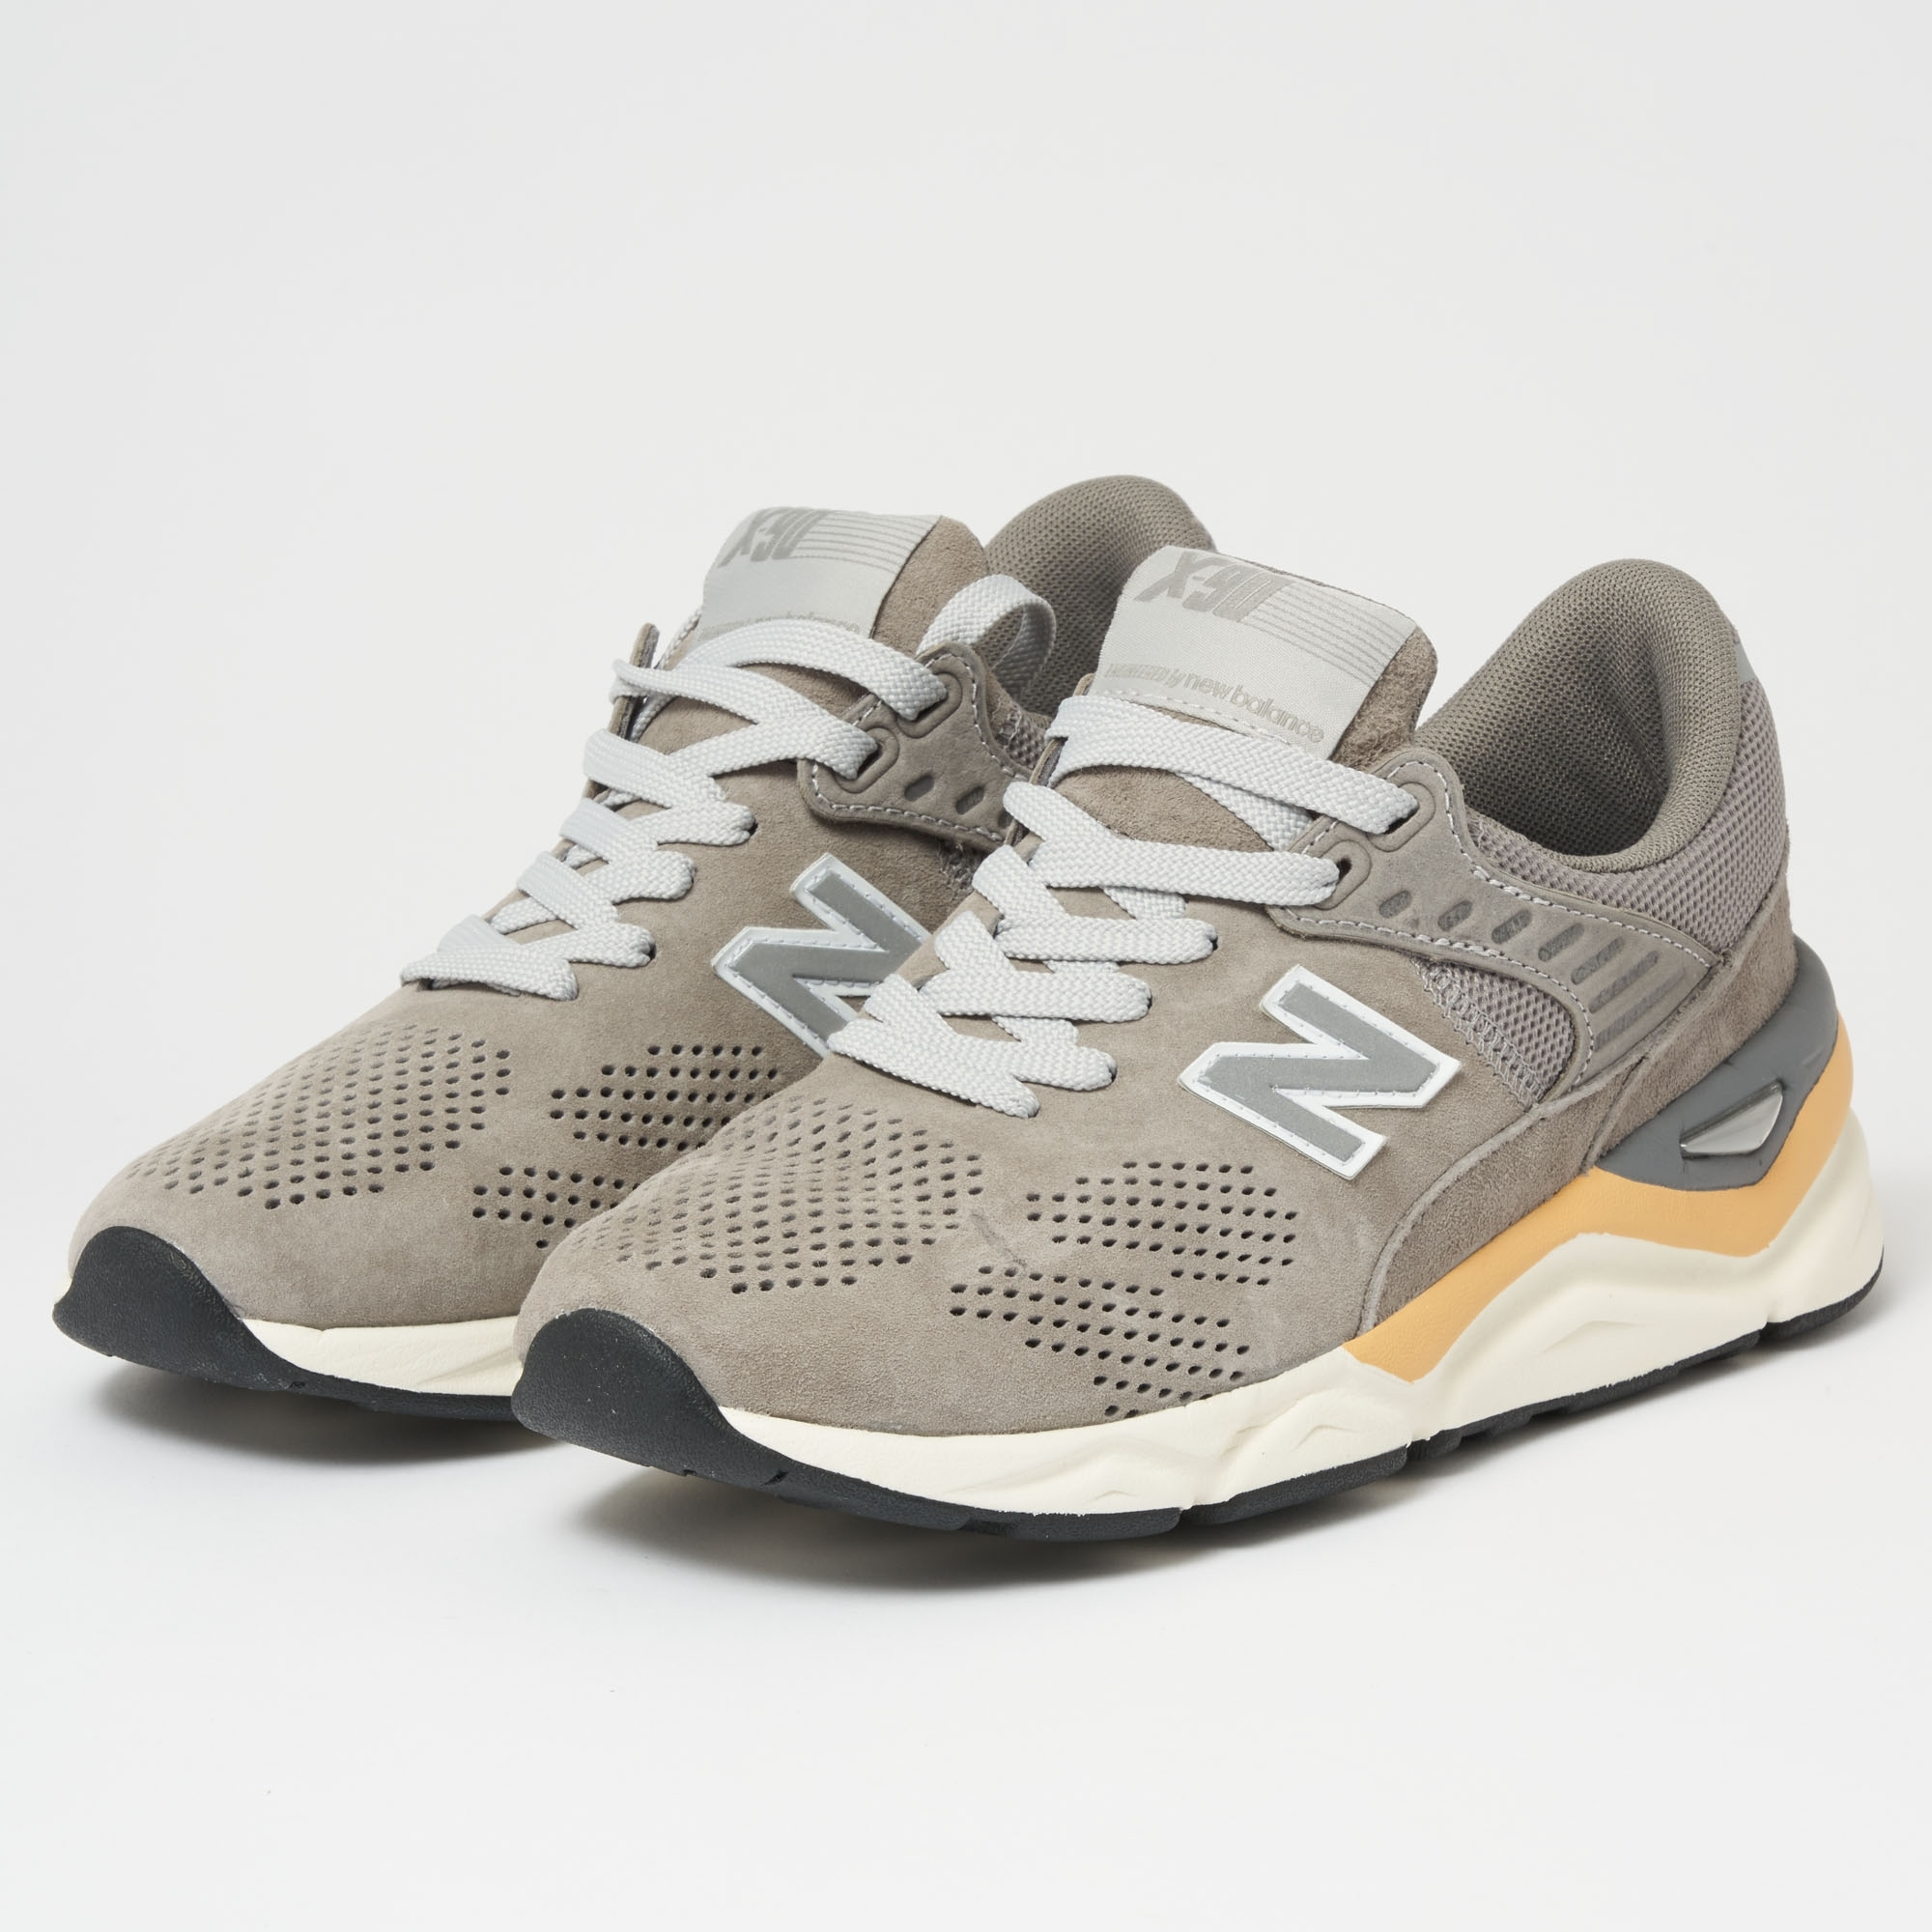 promo code b3b40 b19d8 New Balance X-90 Sneakers   Grey   MSX90PNB   Stuarts London